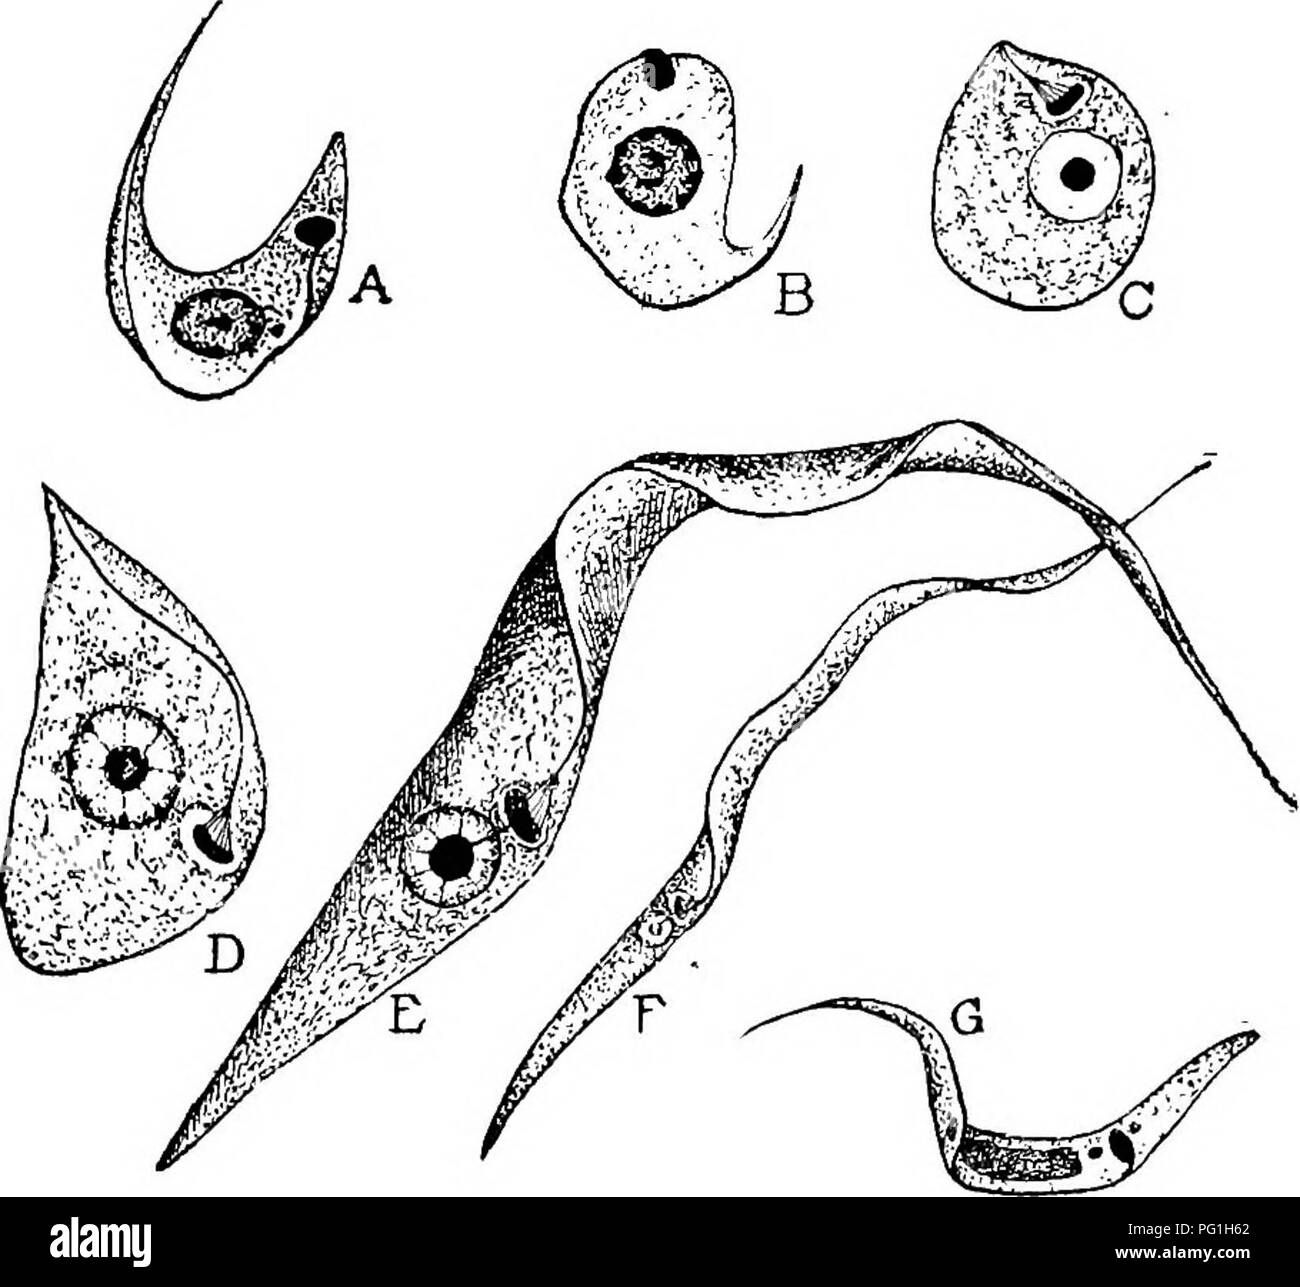 . Animal parasites and human disease. Medical parasitology; Insects as carriers of disease. CHAGAS' DISEASE — PARASITE IN BUG 111 transmitting agent of the trypanosome. A few hours after a bug has fed on infected blood the trypanosomes begin to change form in the midgut, becoming round and Leishmania-like in form, losing the flagellum and undulating membrane (Fig. 28A, B and C.) Then comes a period of very rapid increase in number, the parasites gradually pushing backward toward the hindgut by sheer multiplication. After about two days Crithidia forms begin to develop and become numerous in th - Stock Image